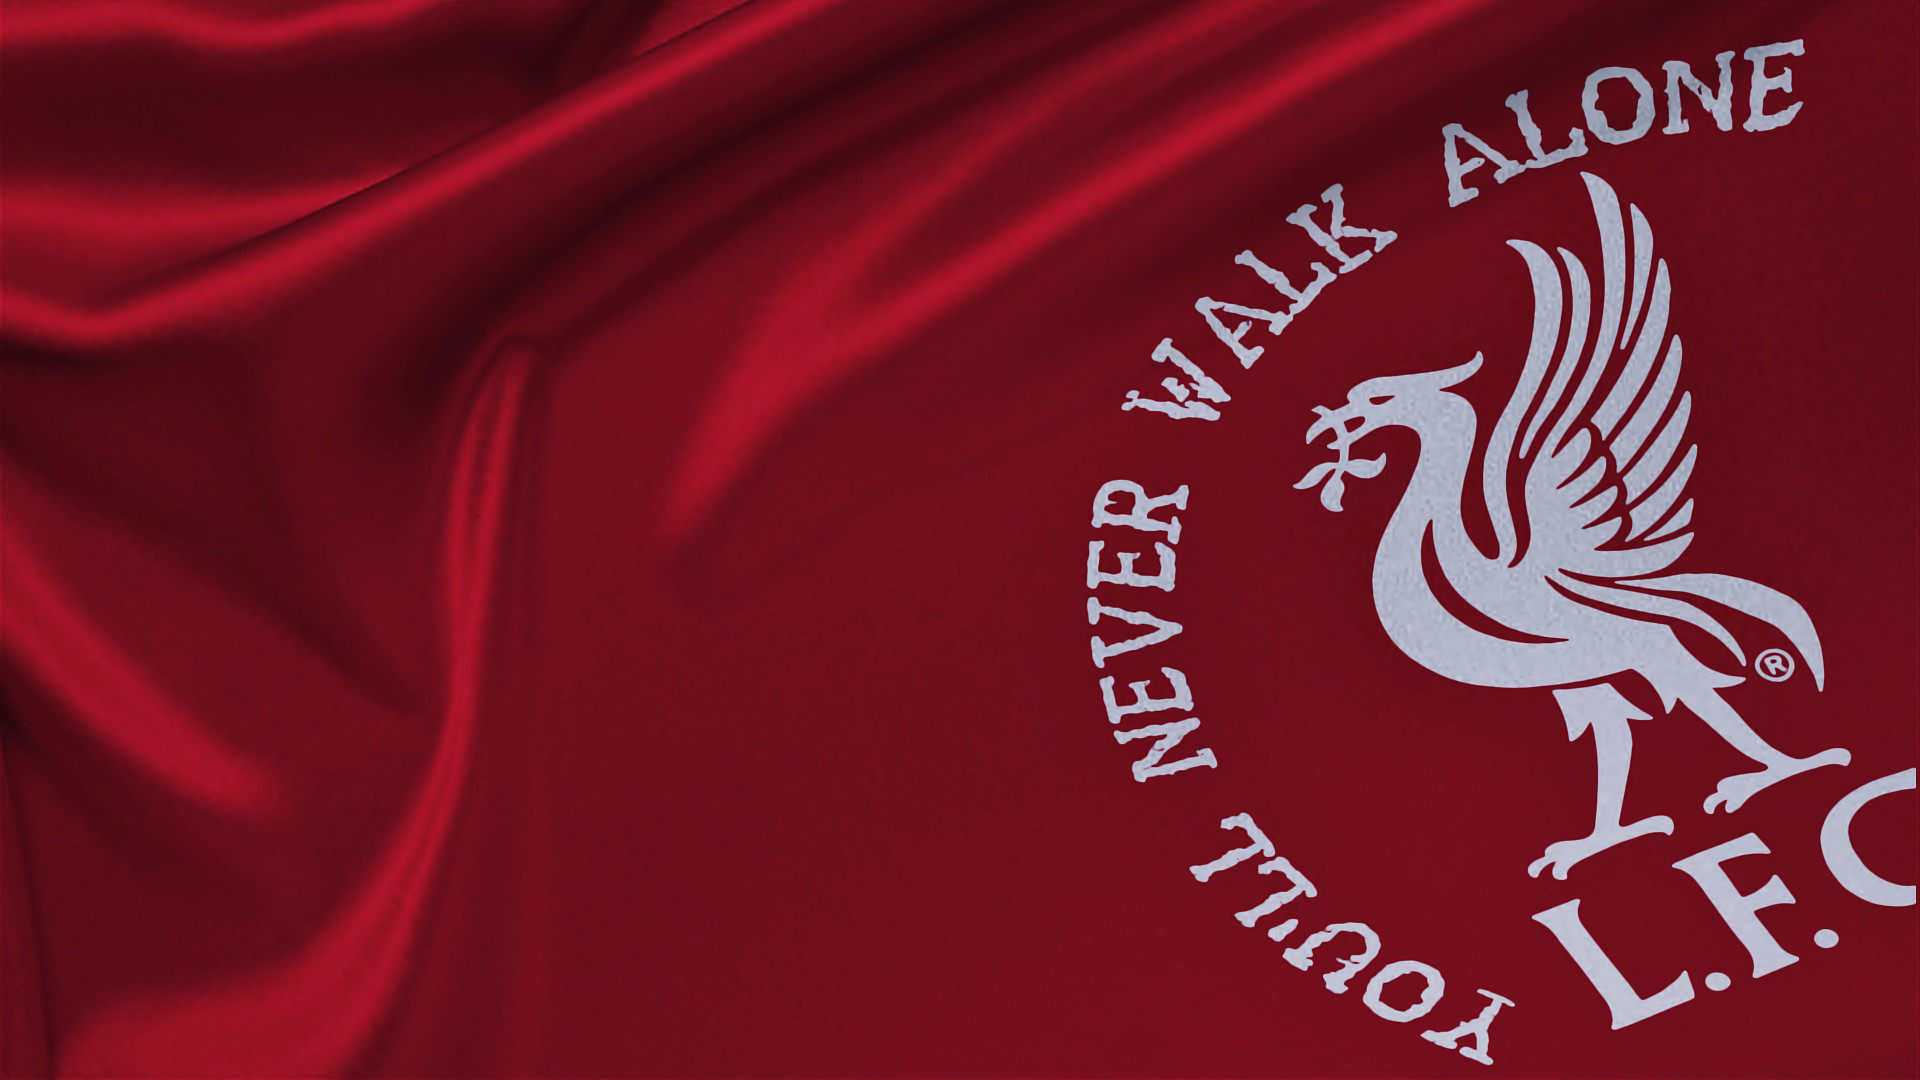 Free Download 64 Lfc Wallpapers On Wallpaperplay 1920x1080 For Your Desktop Mobile Tablet Explore 53 Lfc Background Lfc Wallpaper Lfc Background